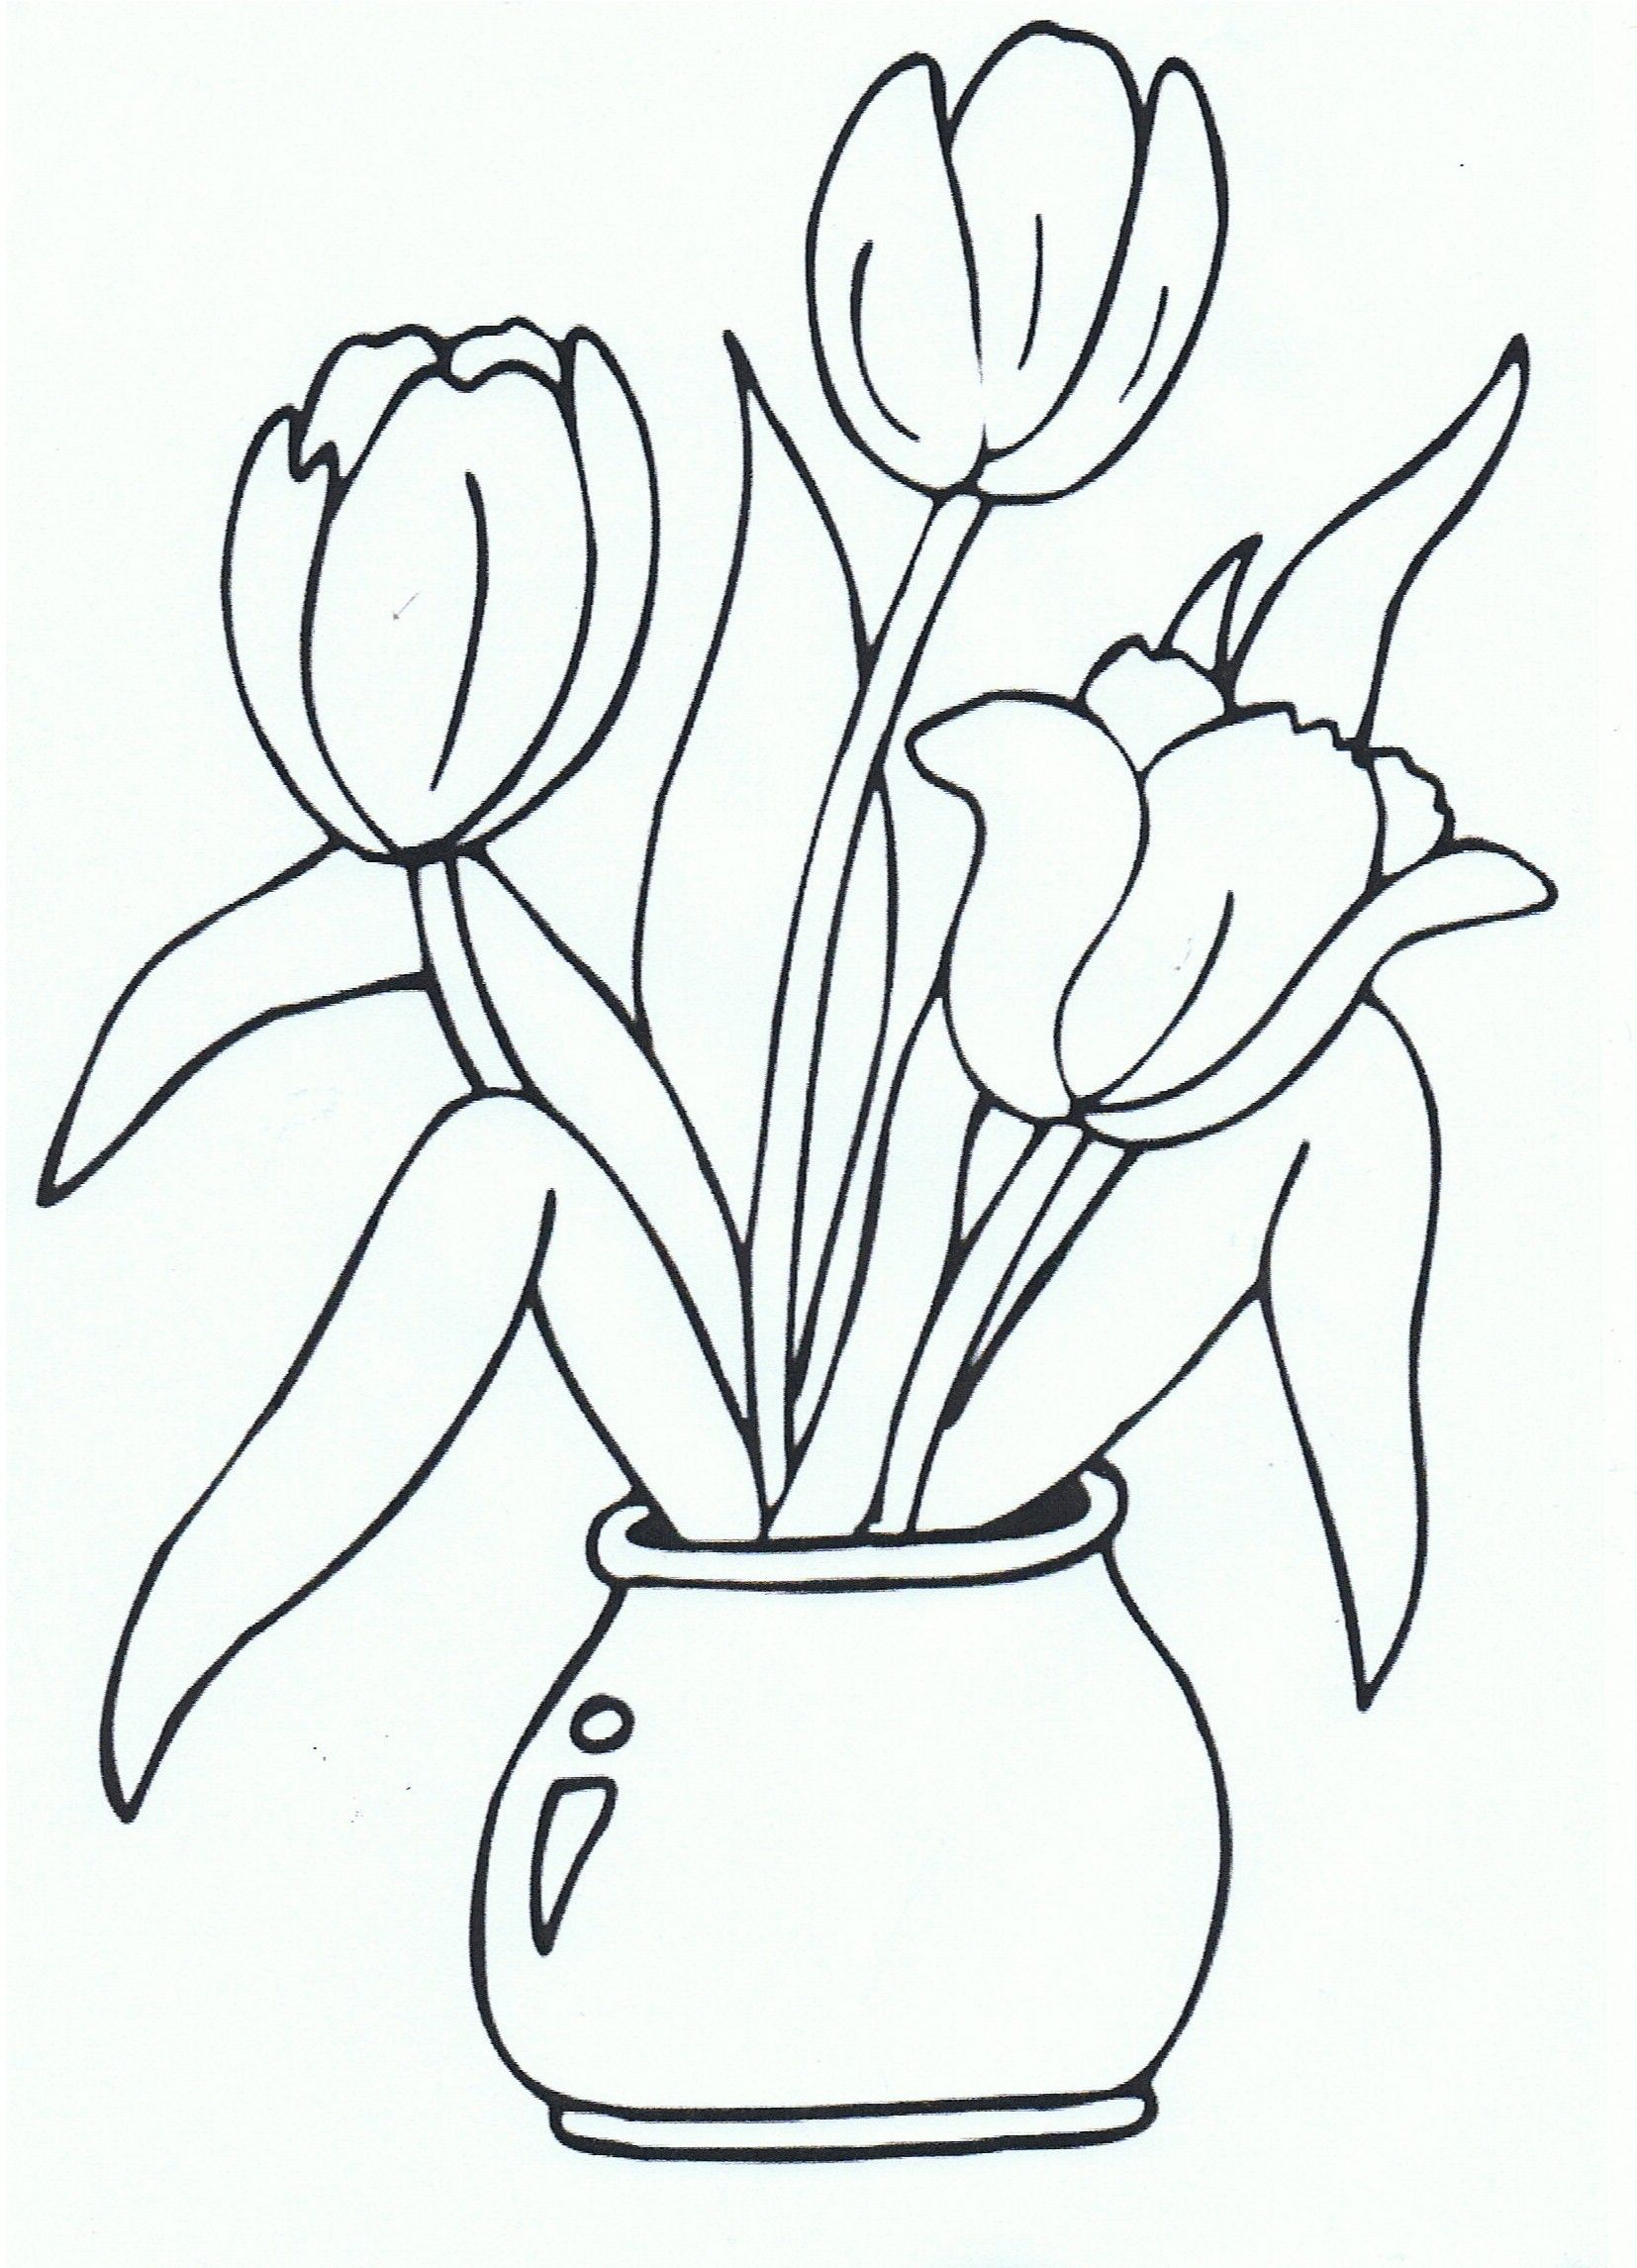 Pin By Miss Doelman On Lente Bloemen Logo 3000 10 Tulip Drawing Flower Coloring Pages Coloring Pages